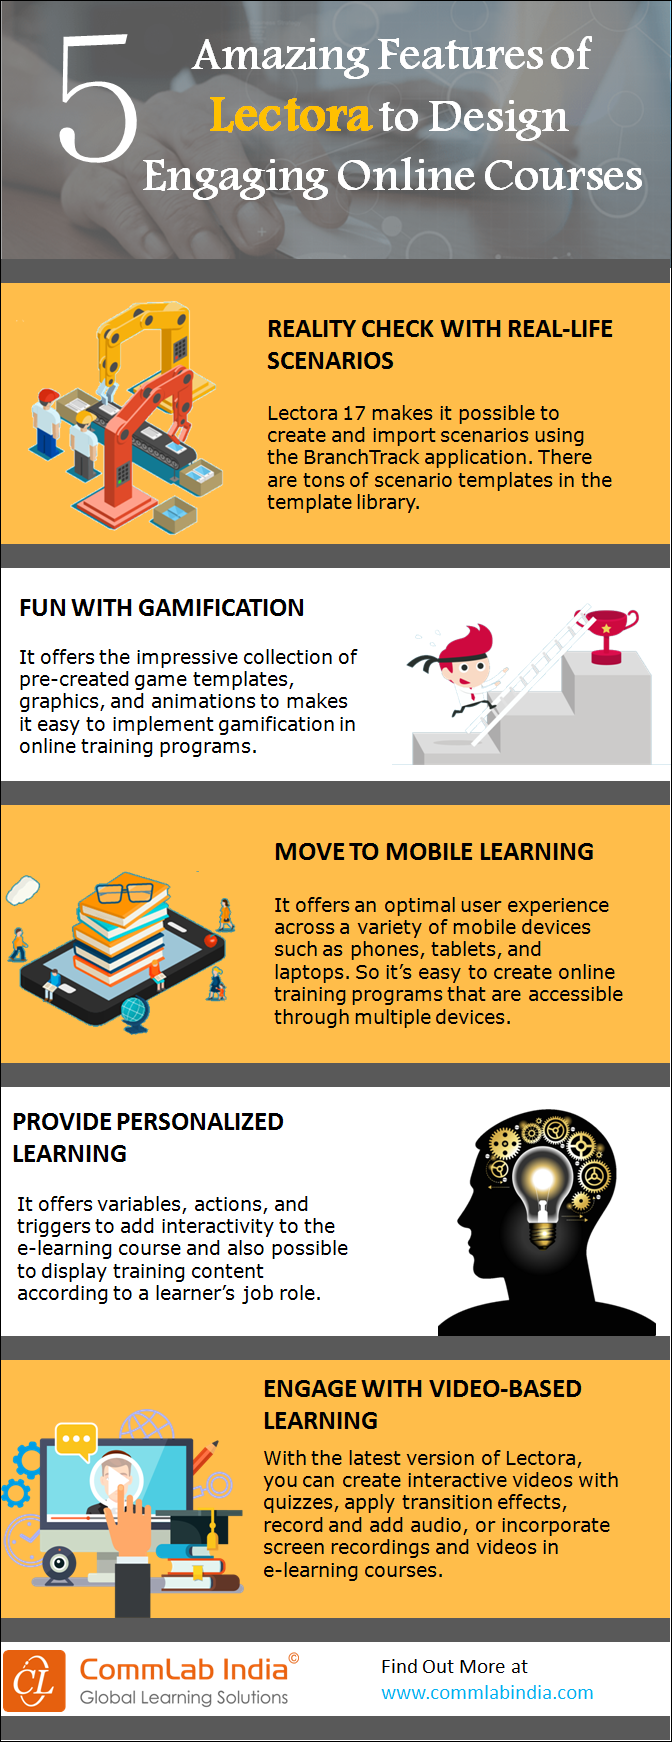 5 Amazing Features of Lectora to Design Engaging Online Courses [Infographic]